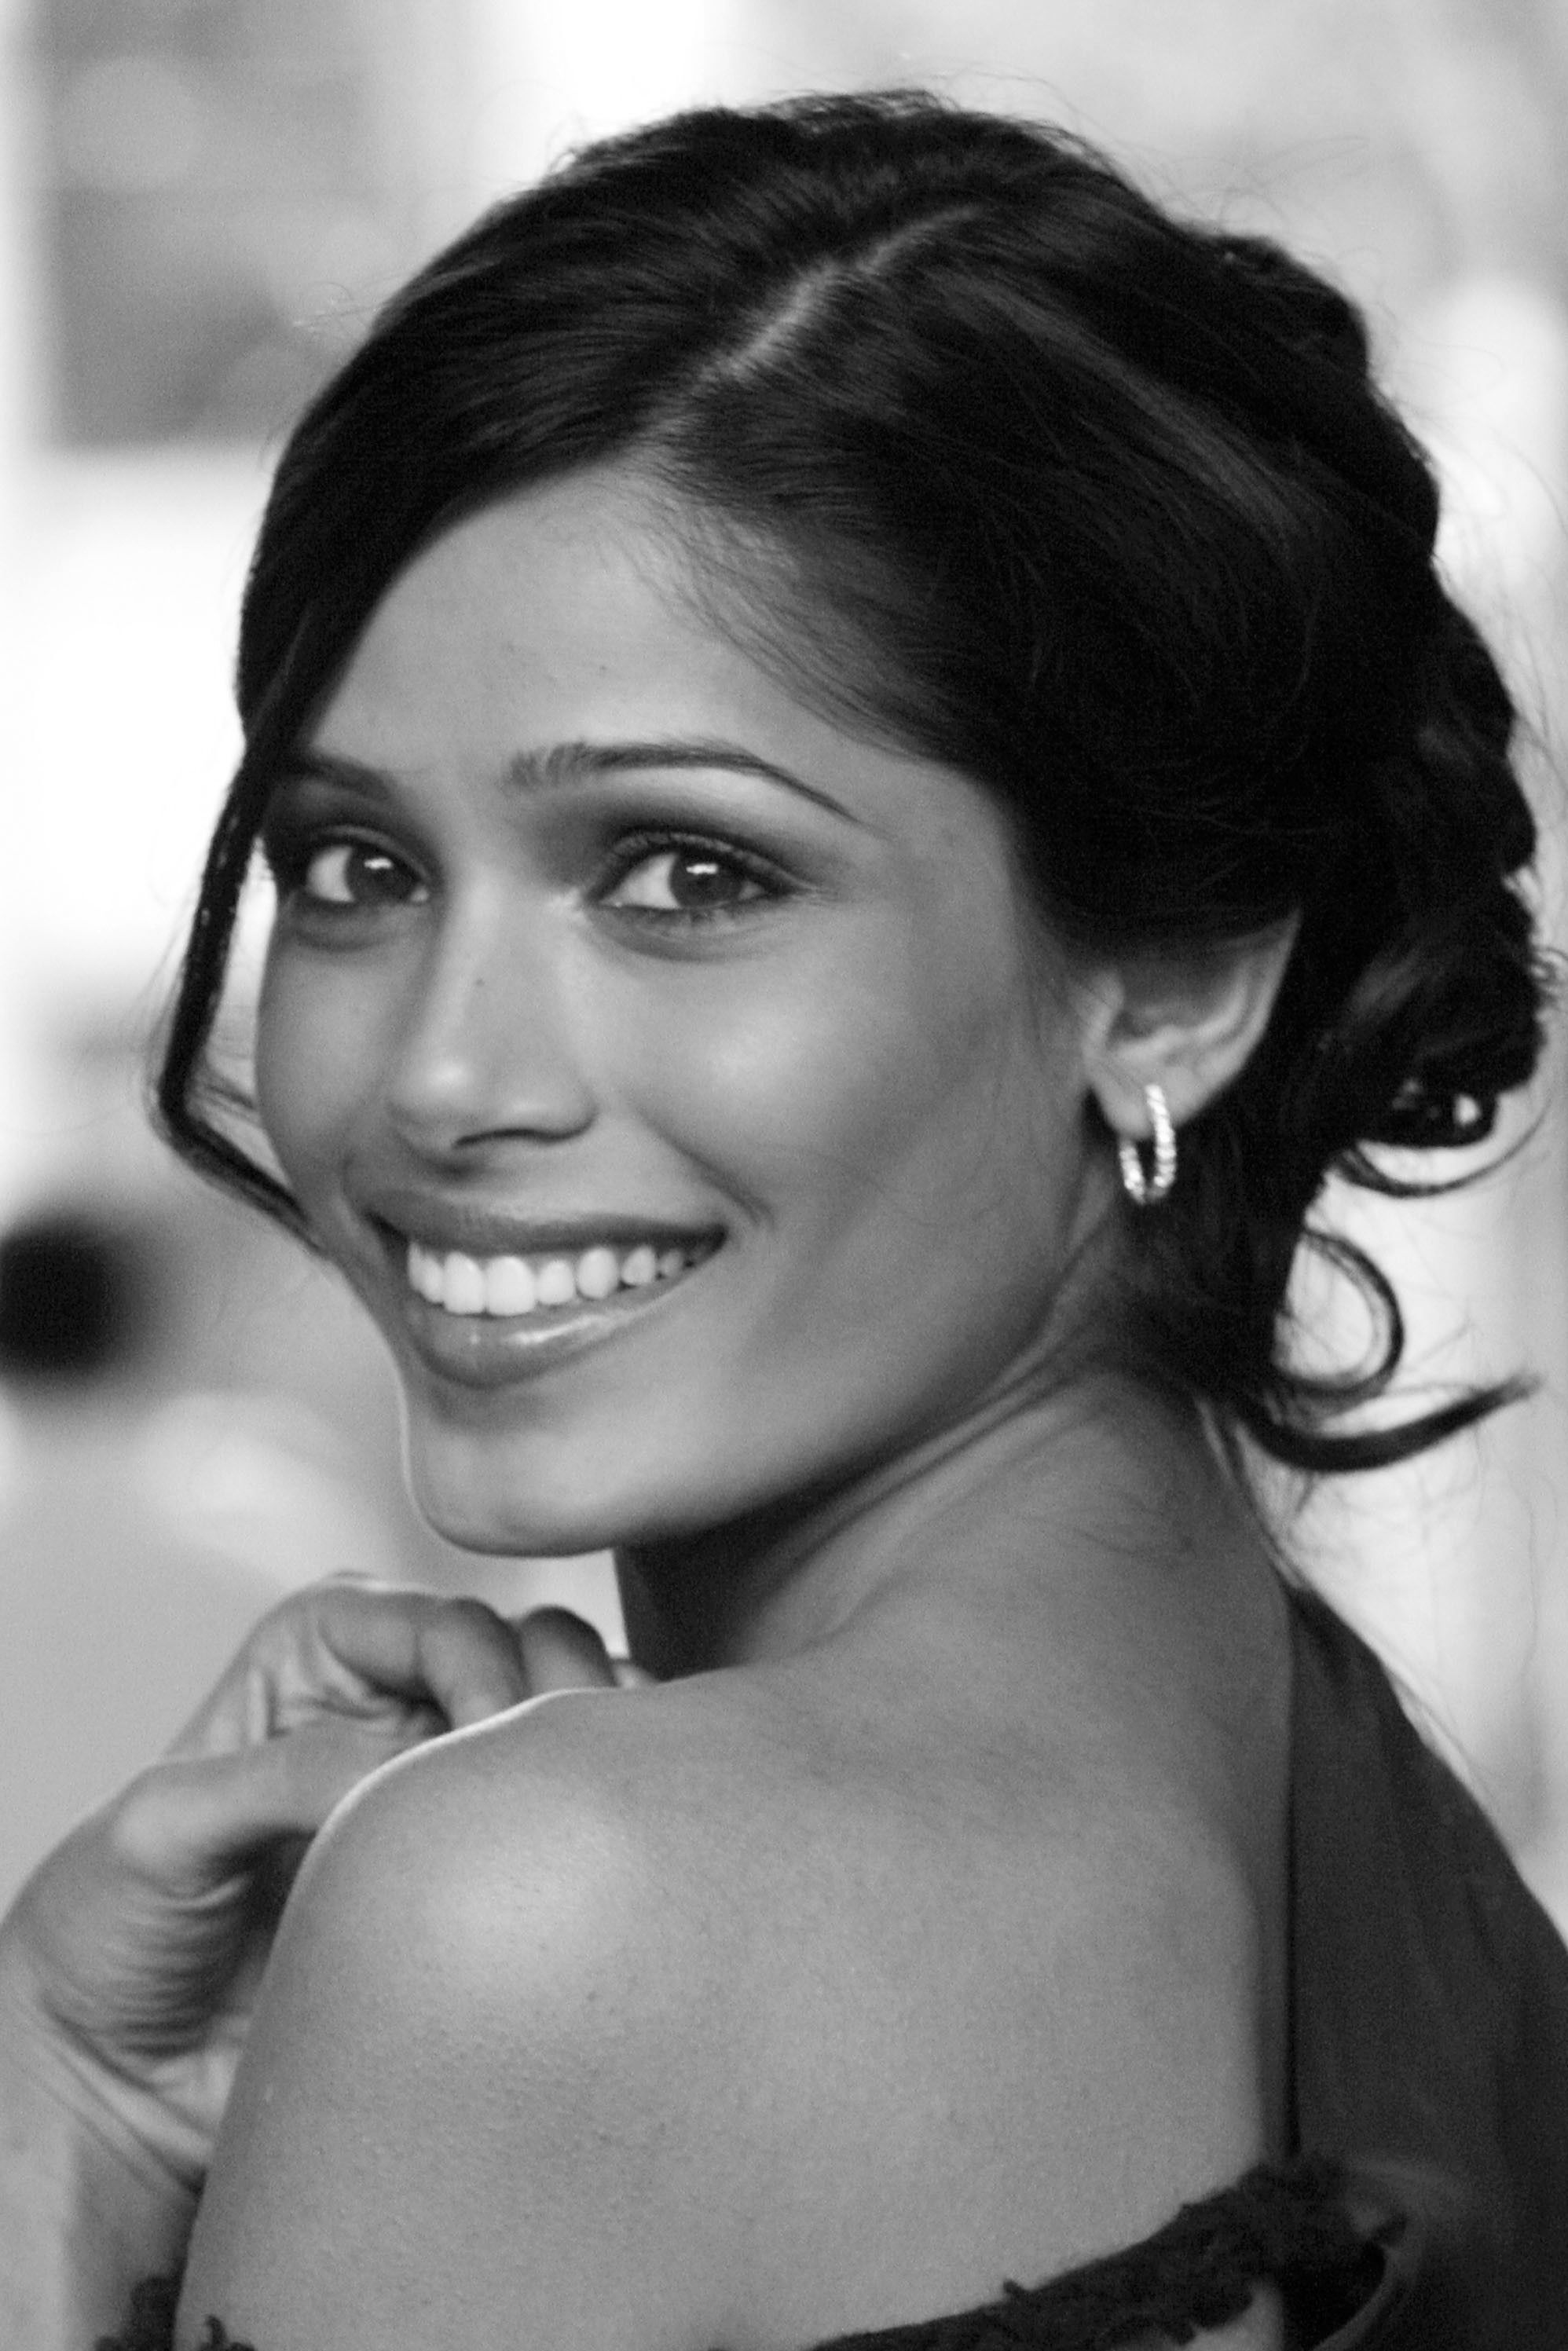 Hacked Freida Pinto naked (71 photos), Hot